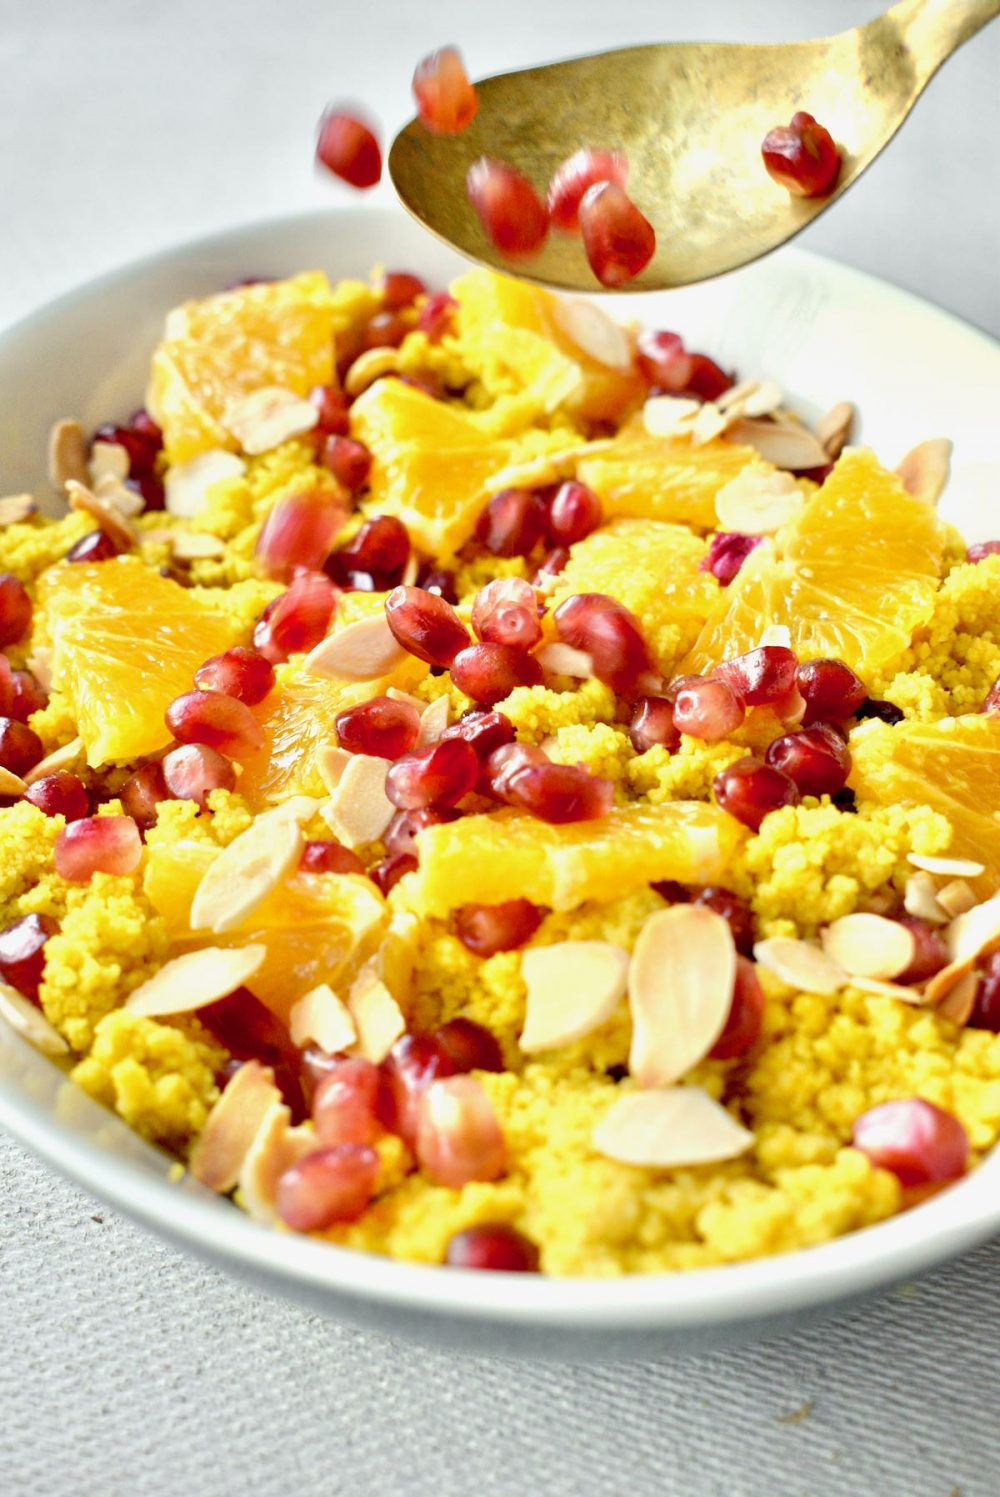 The pomegranate seeds are caught in mid air as they fall from a spoon on to the couscous